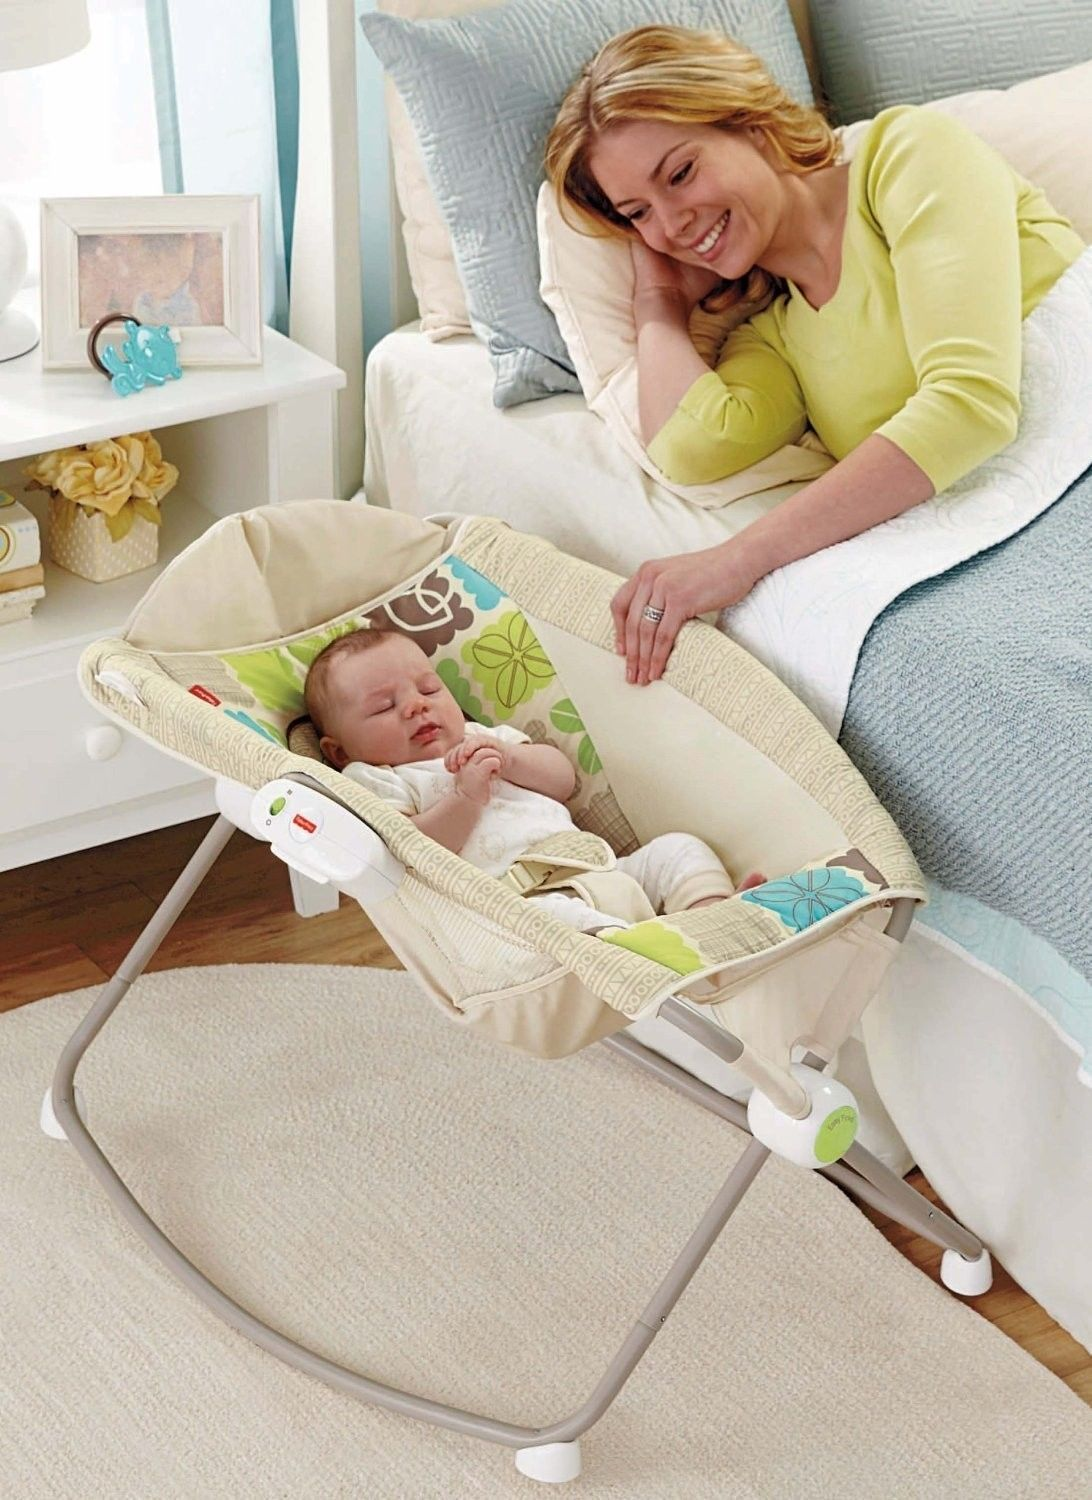 Newborn Sleeper Rocker Swing Infant Rock Play Baby Chair Bassinet Bouncer Sleep Newborn Sleeper Rock N Play Sleeper Rock N Play